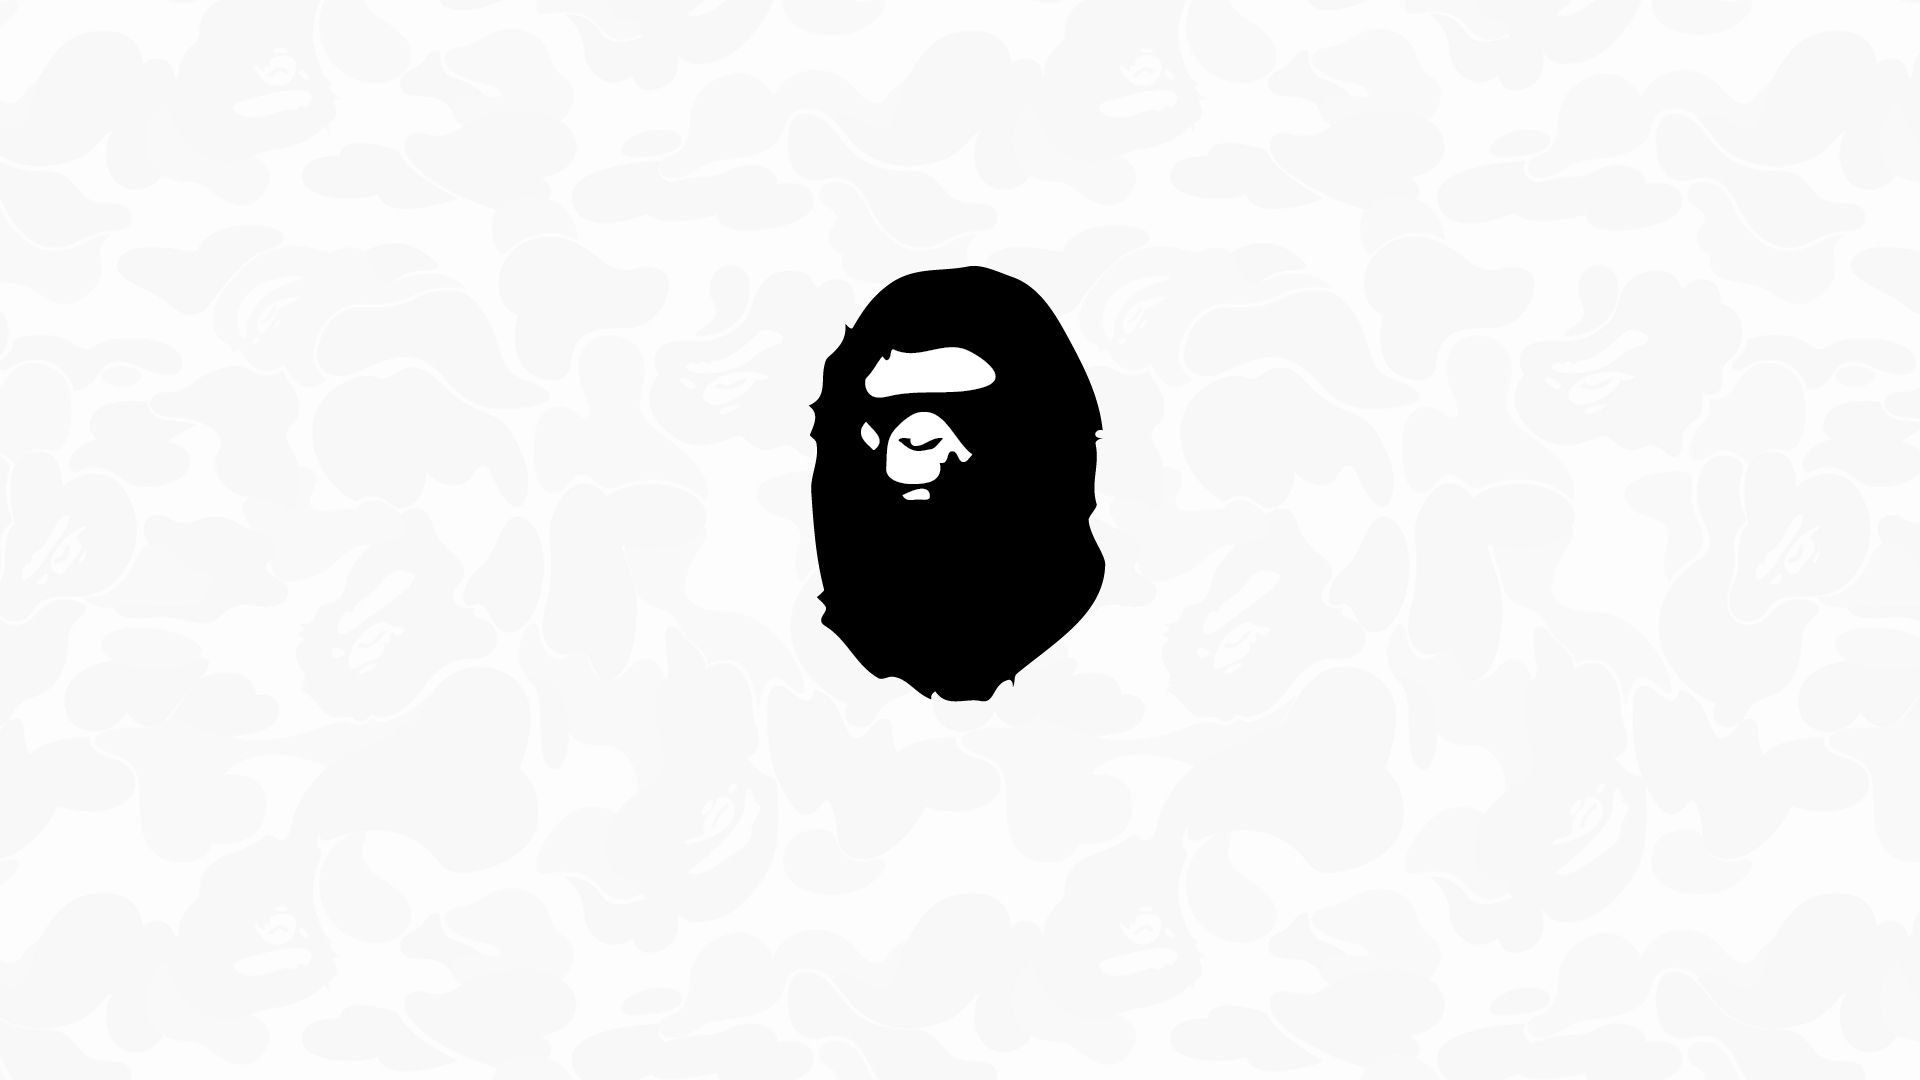 Bathing Ape Wallpaper Iphone X Bape Wallpapers Top Free Bape Backgrounds Wallpaperaccess